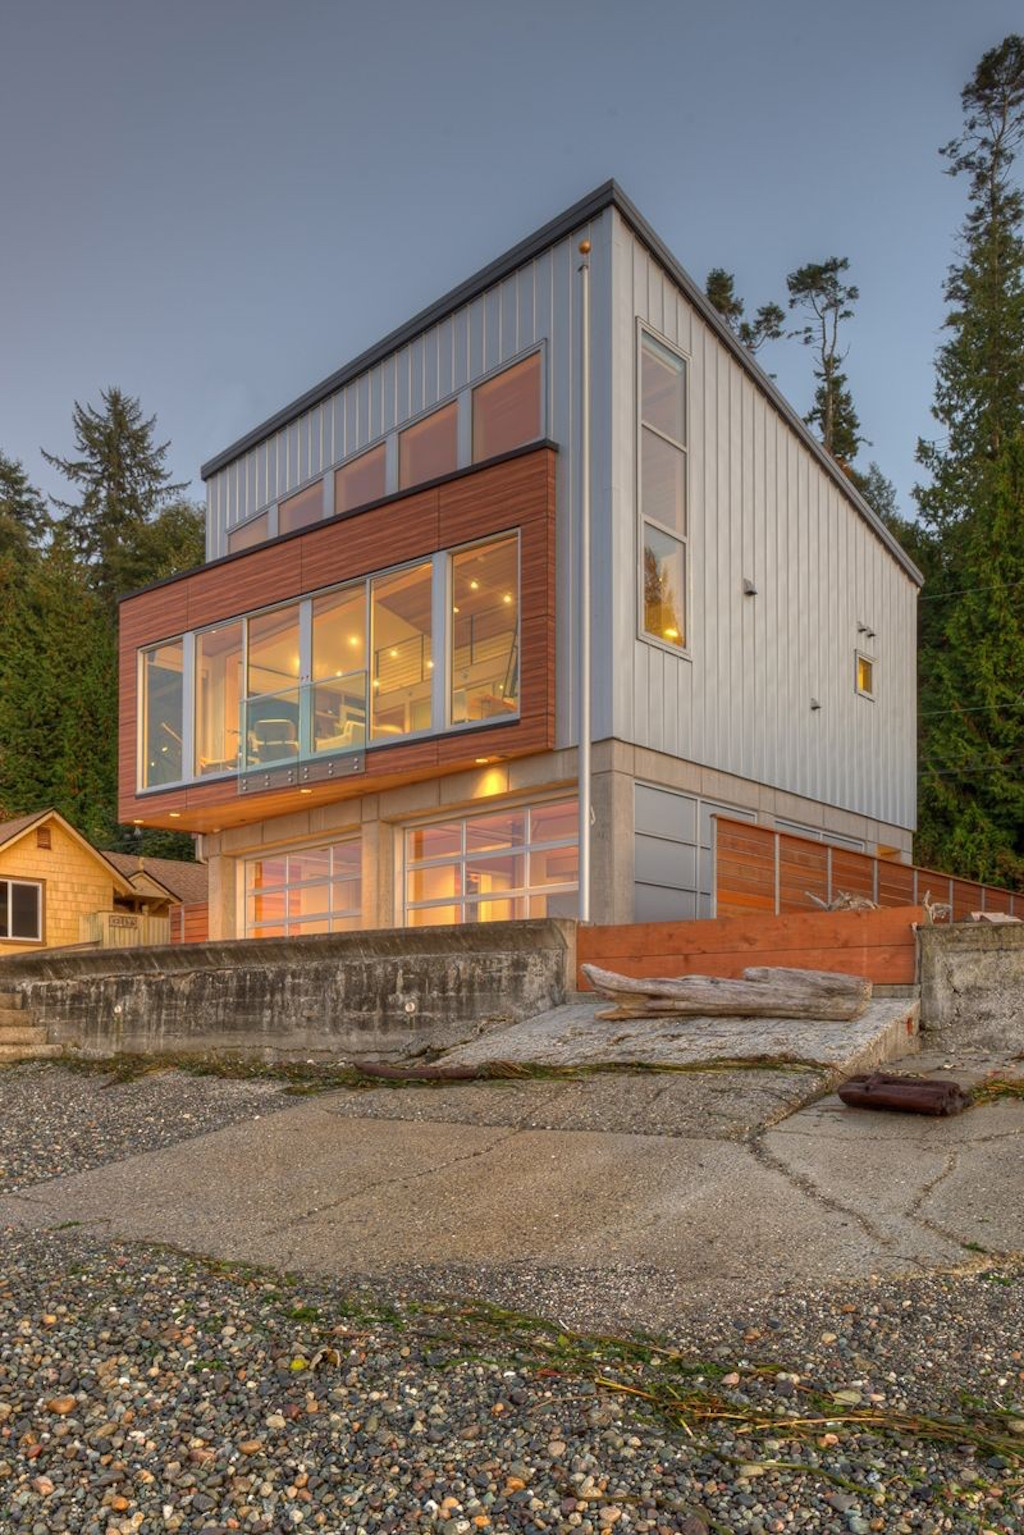 Tsunami house by designs northwest architect for Home designs northwest